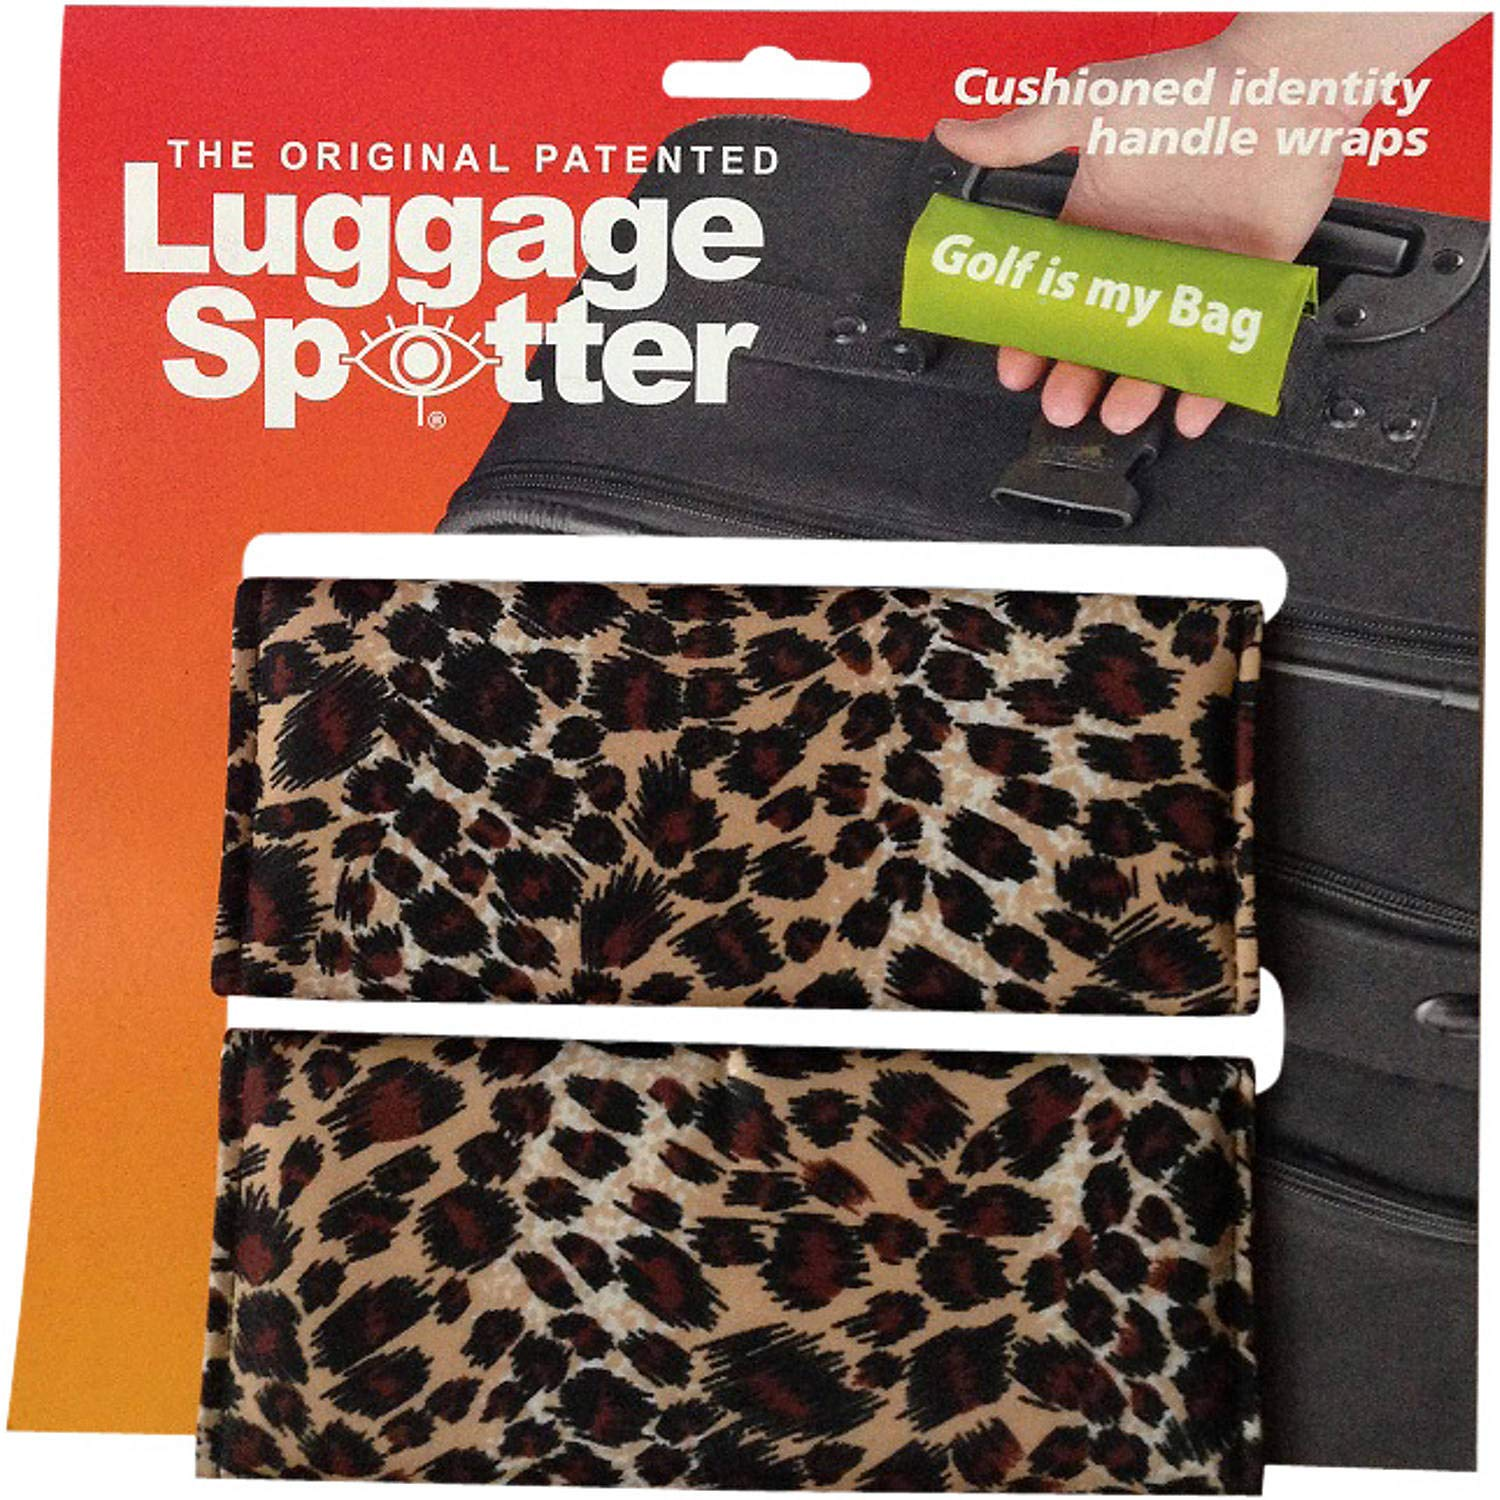 50% OFF! LEOPARD Luggage Spotter Luggage Locator/Handle Grip/Luggage Grip/Travel Bag Tag/Luggage Handle Wrap (2-pack) – CLOSEOUT ON THIS PATTERN!